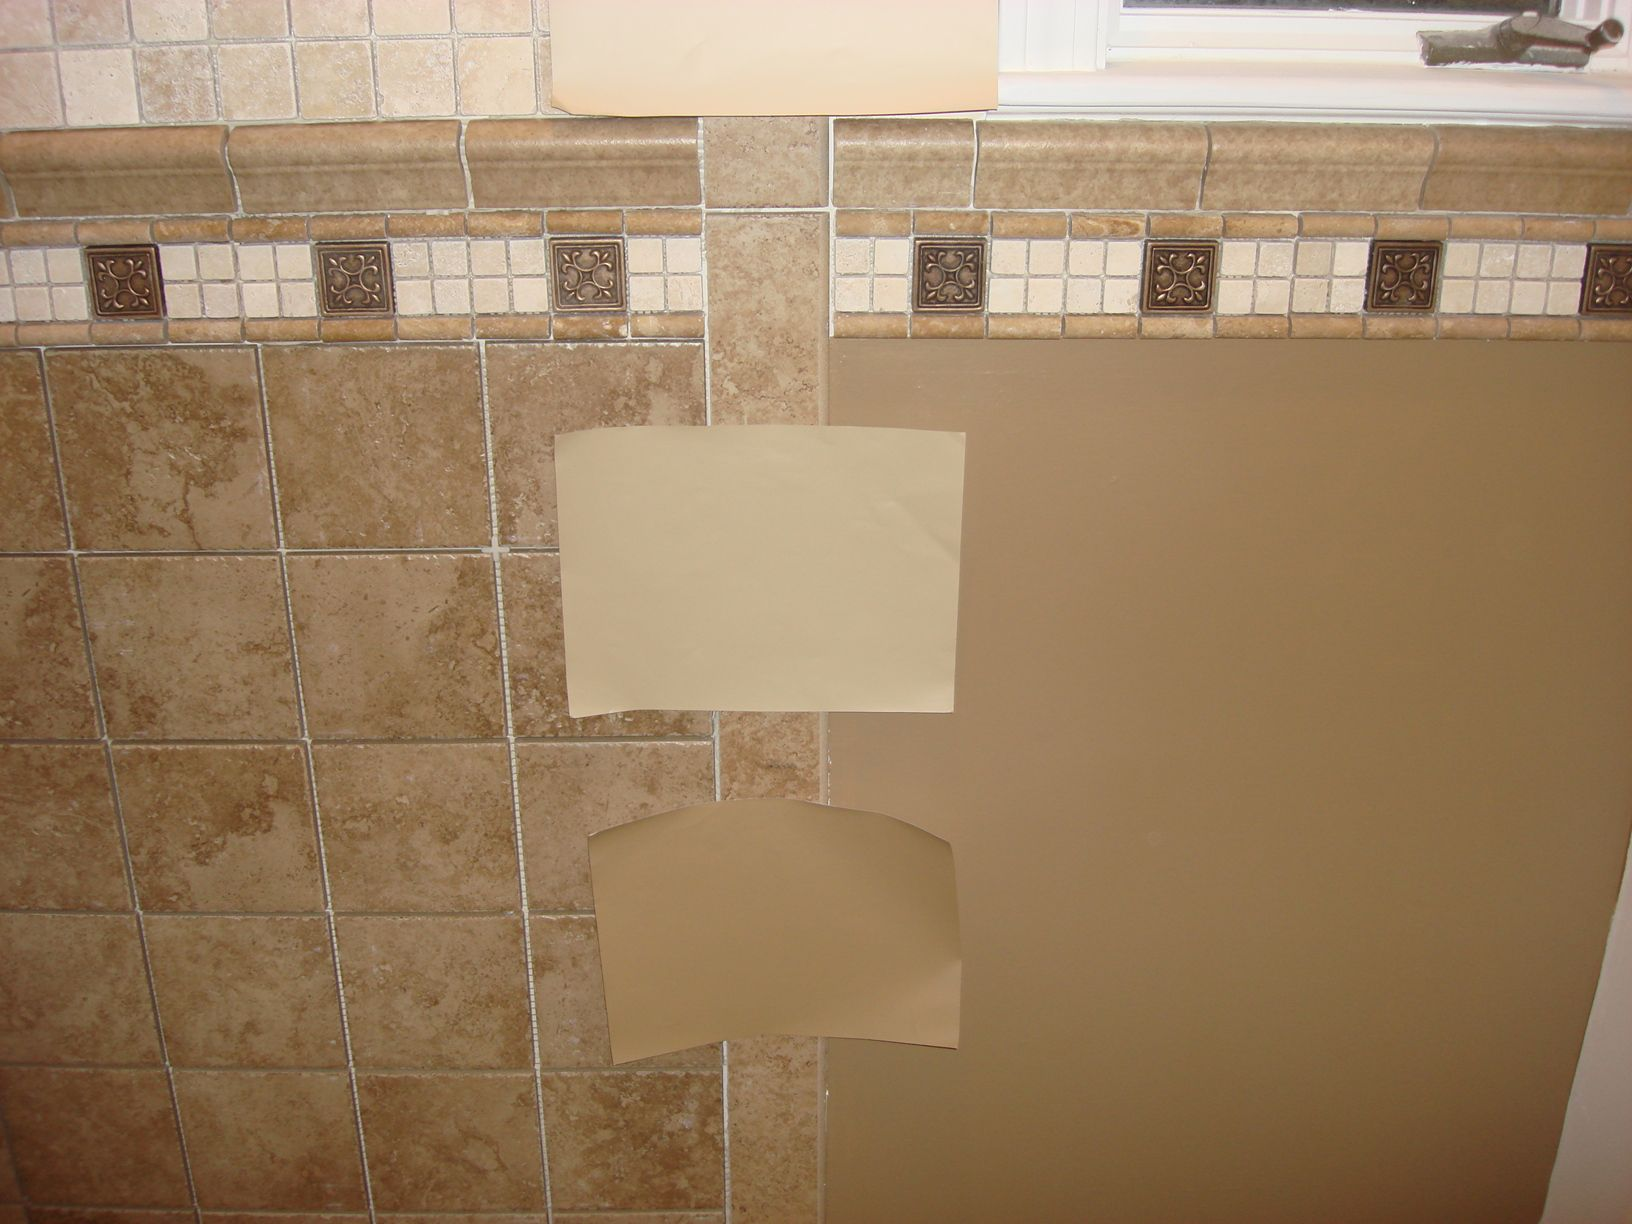 Brown Color Schemes Captivating Mosaic Ceramic Wall Tiles Bathroom Paint Colors